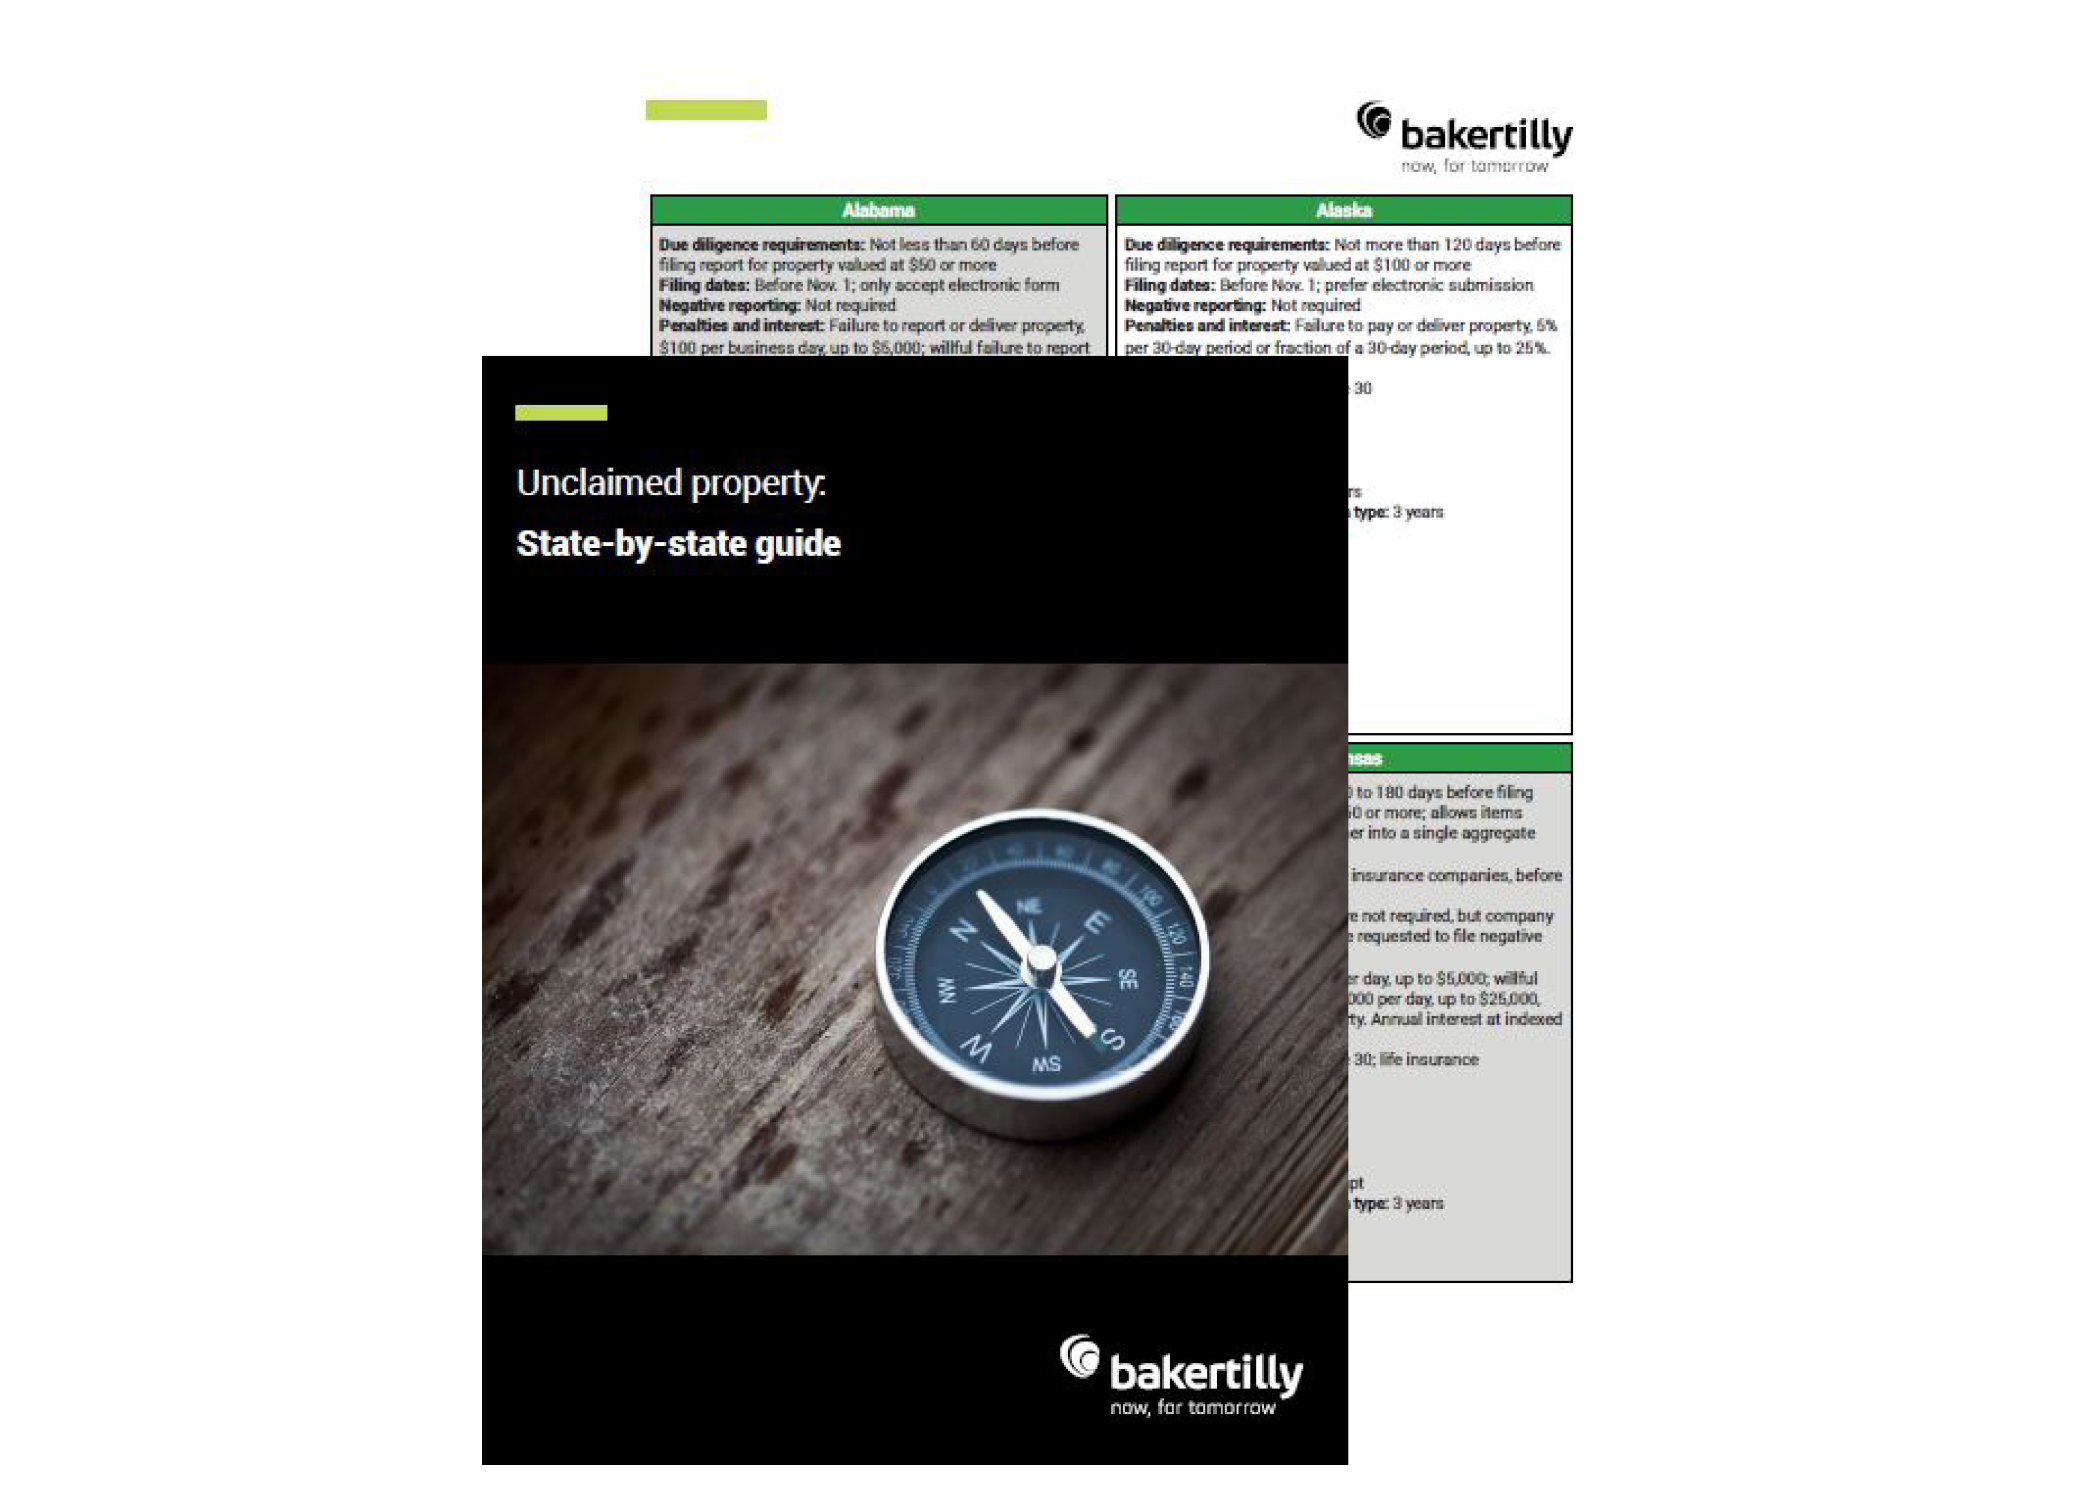 unclaimed property state guide